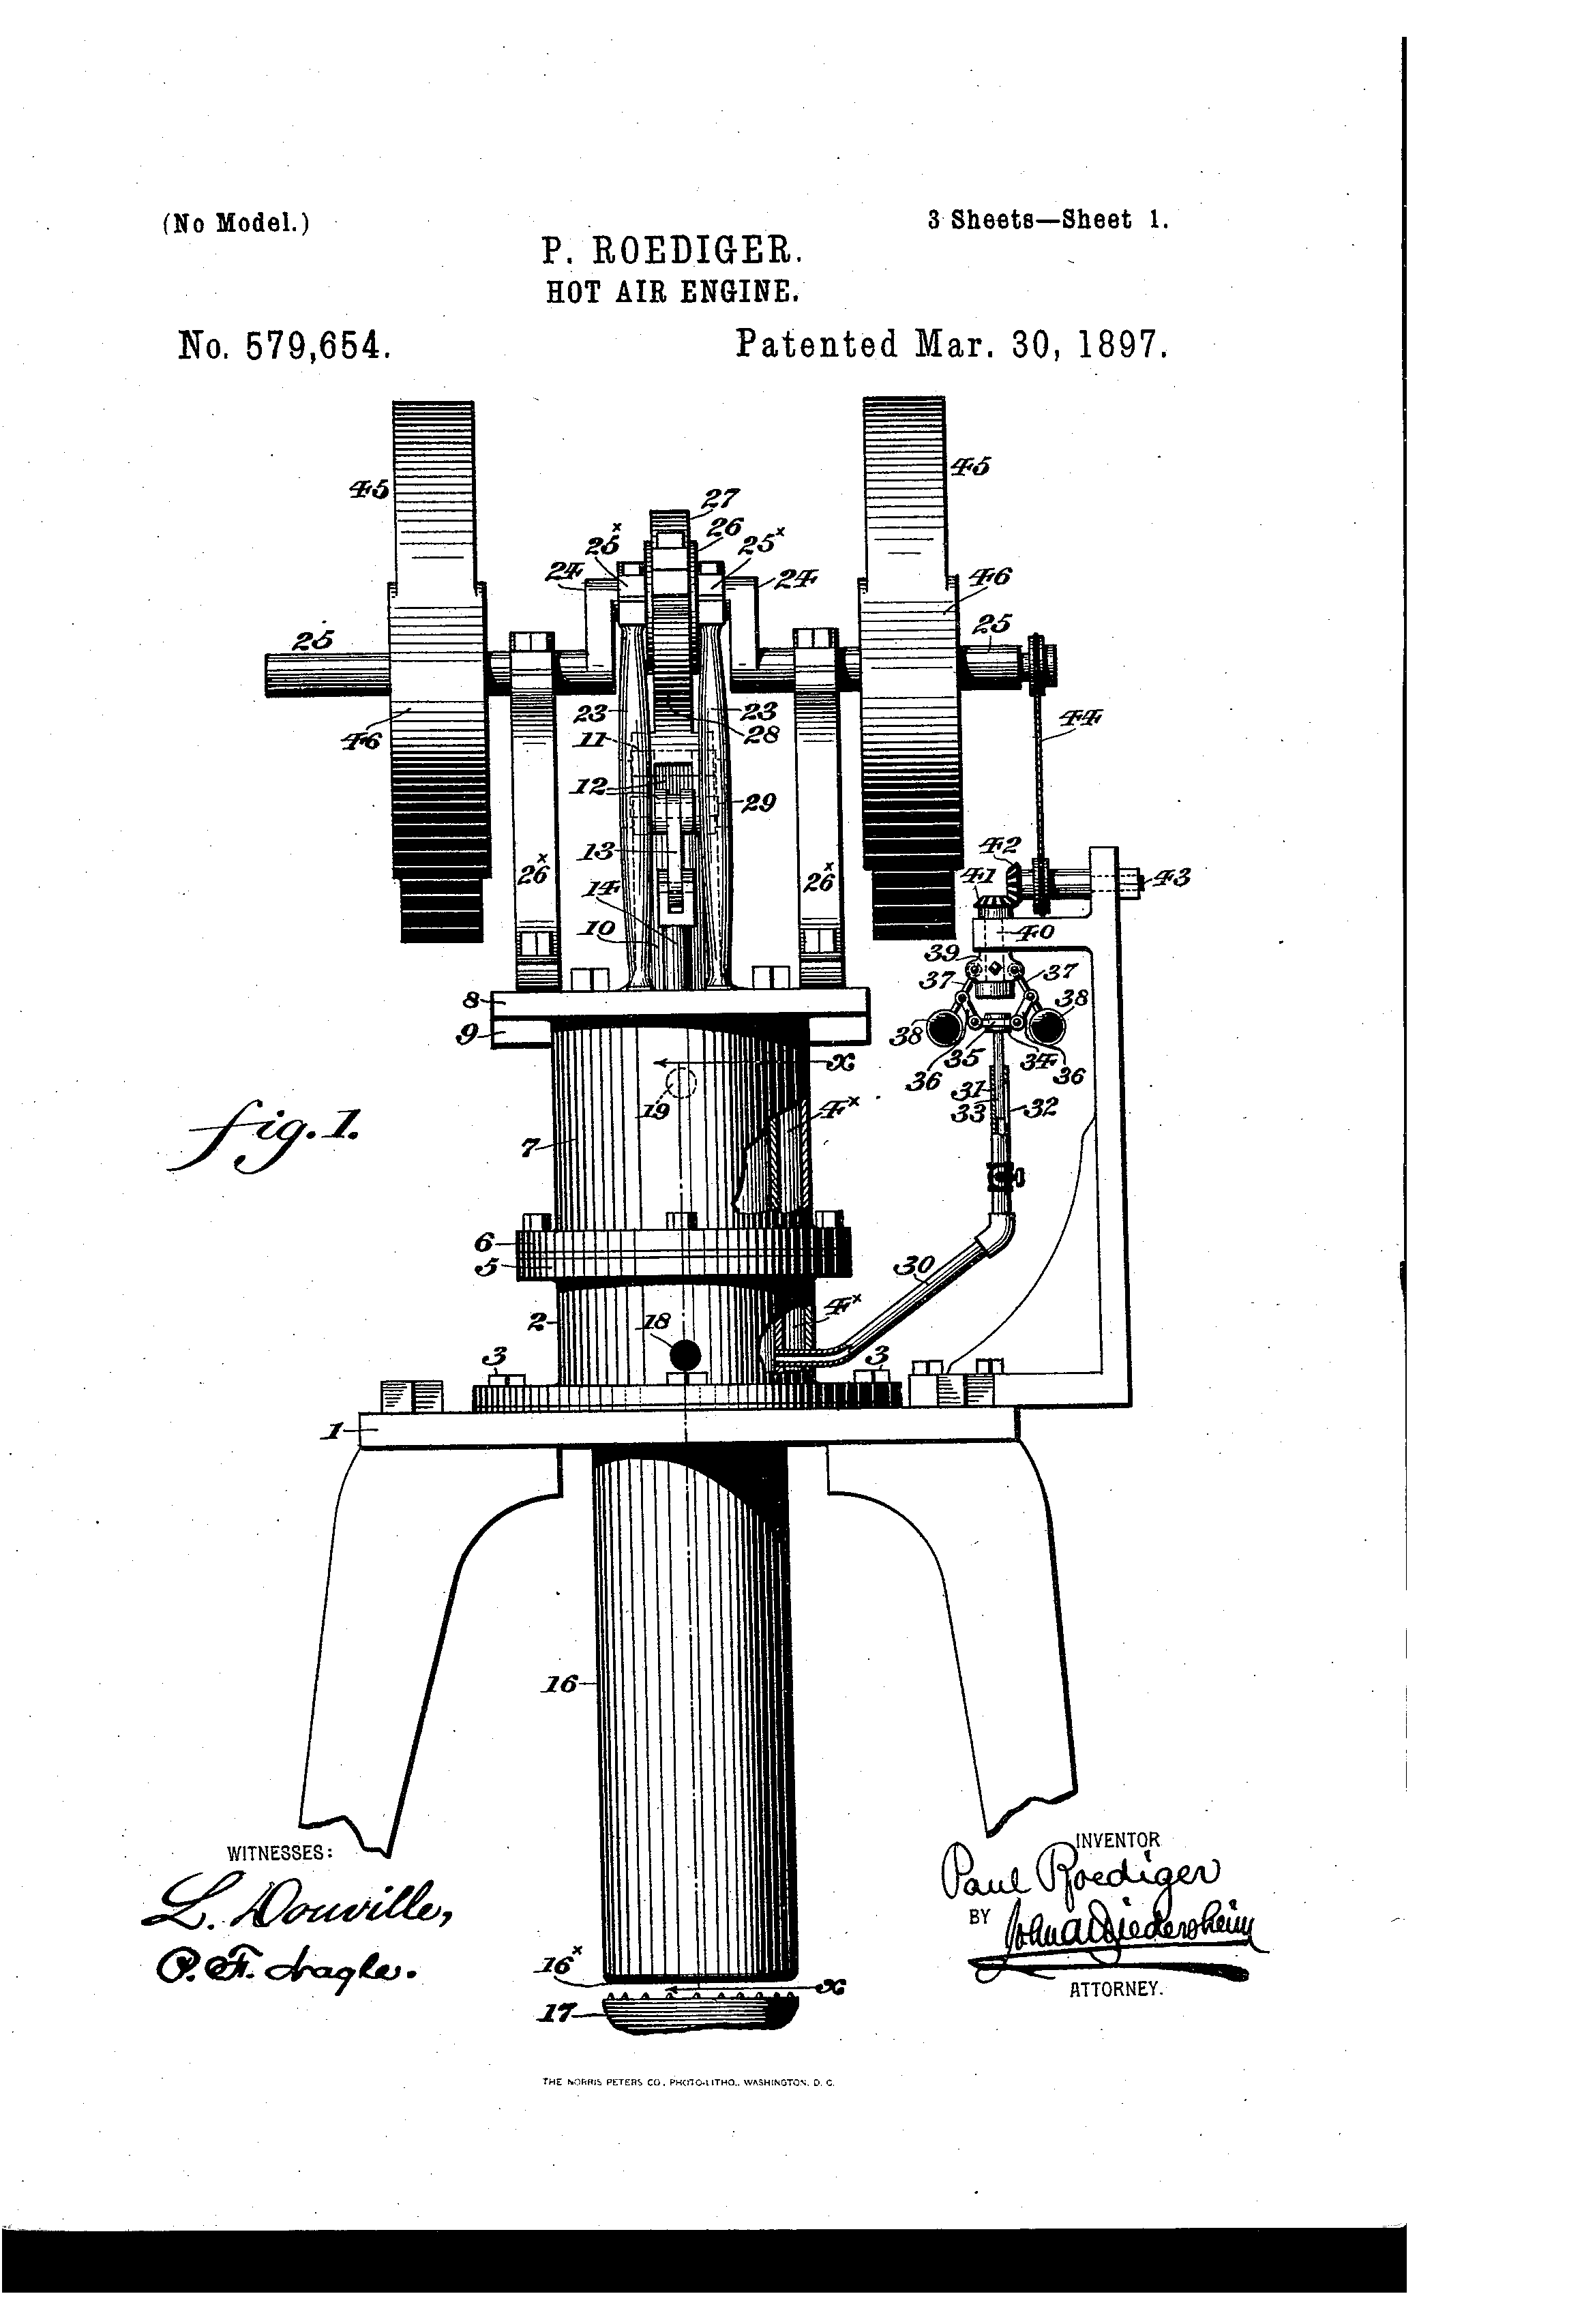 Hot Air Engine Us 579654 A Patent Drawing Engineering Hot Air